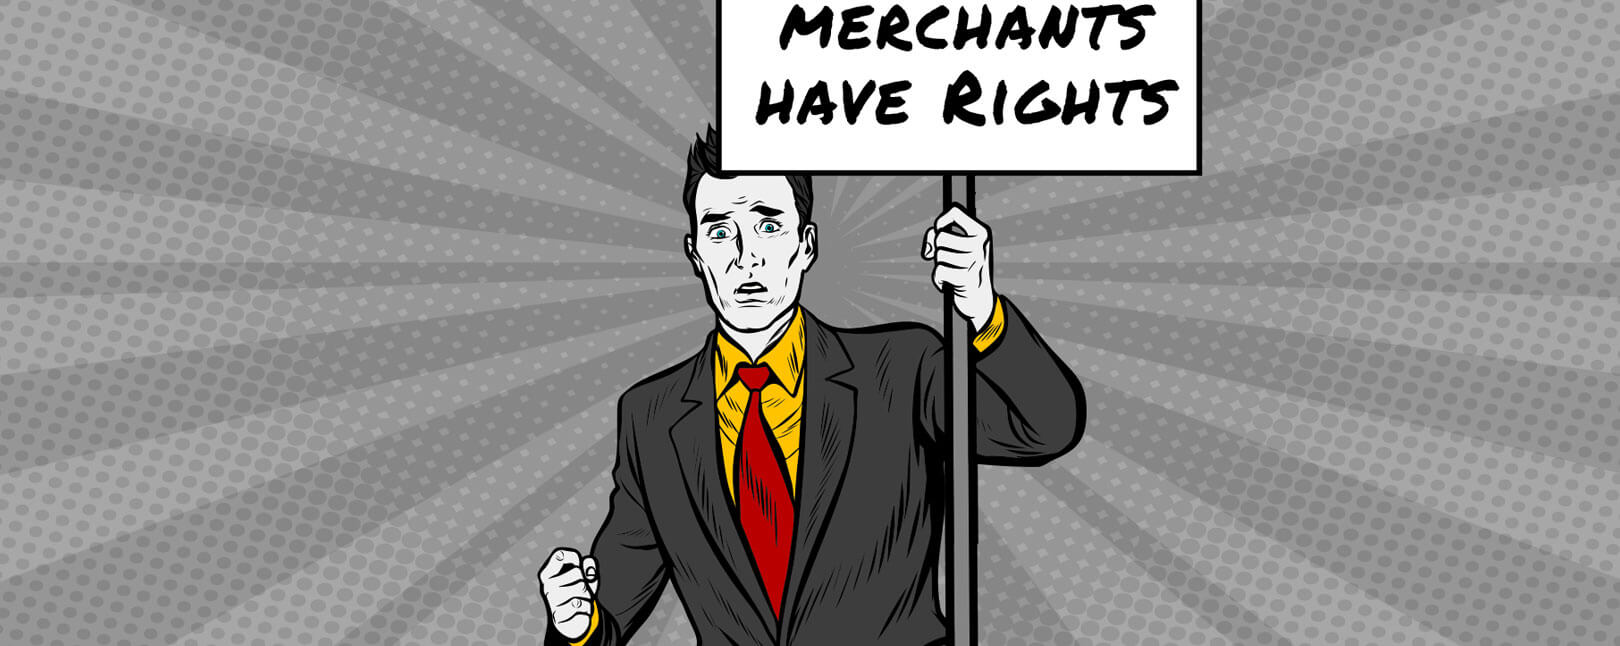 merchant chargeback rights